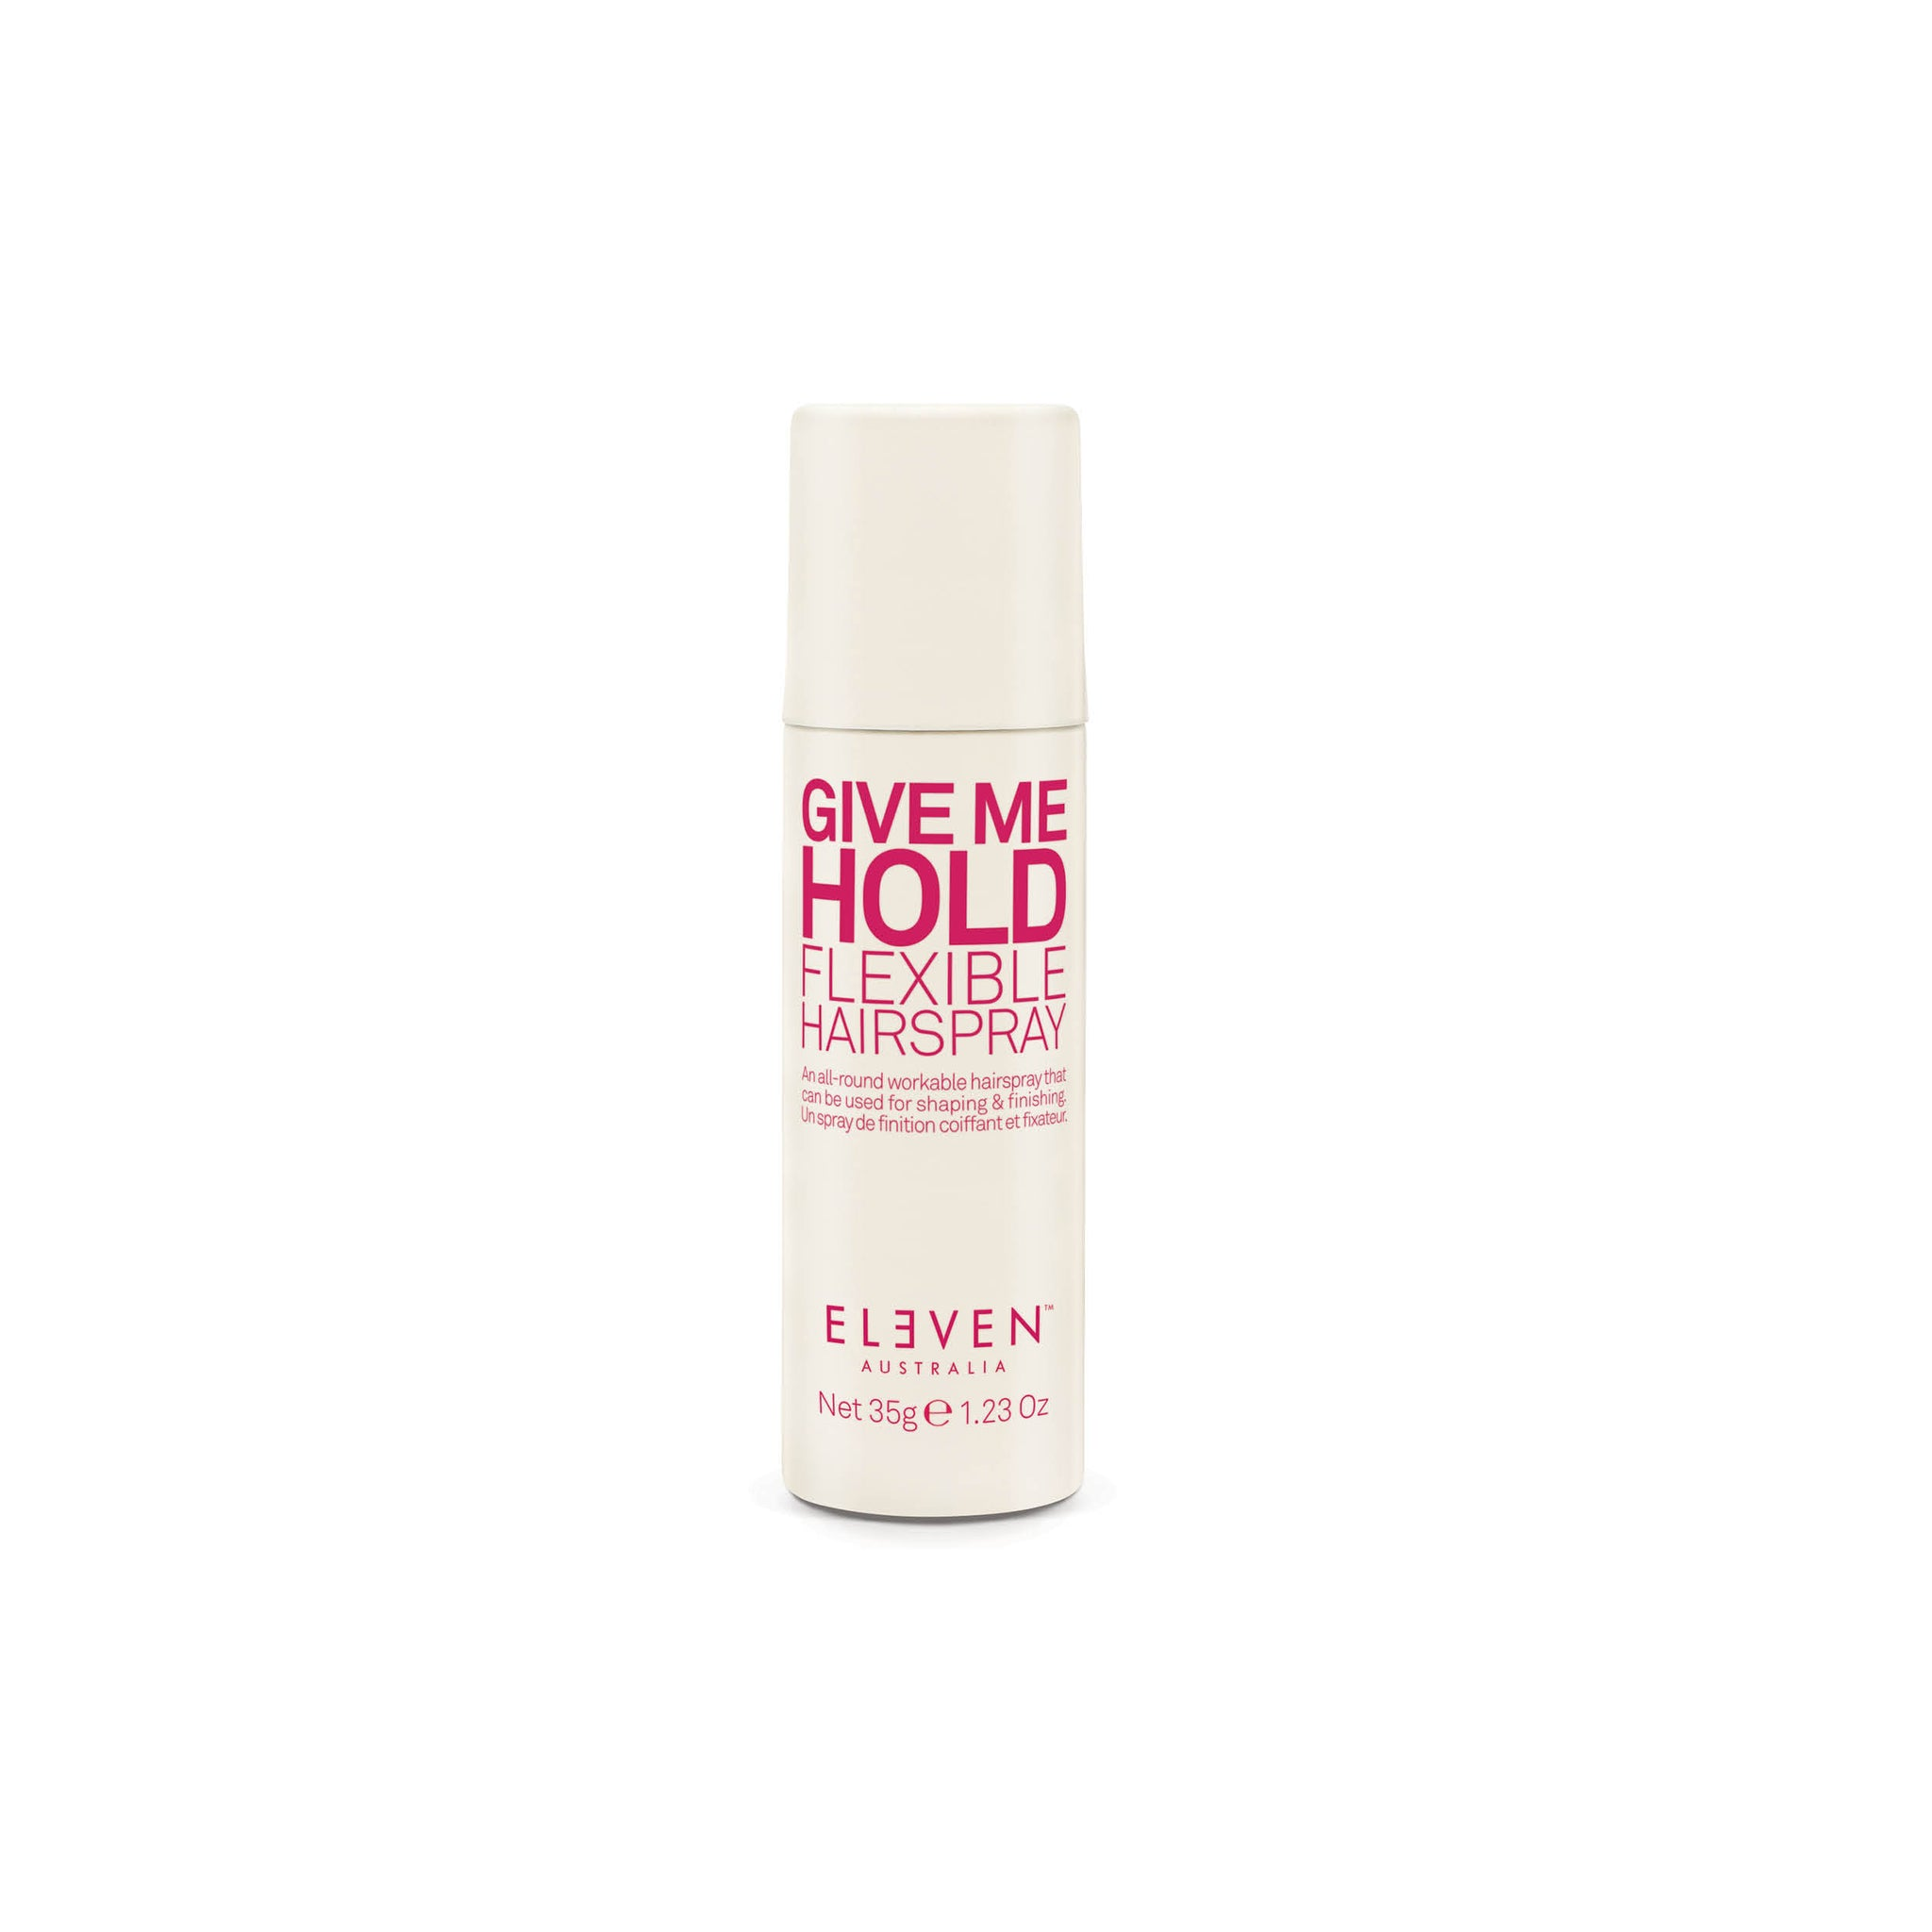 ELEVEN Give Me Hold Flexible Hairspray 35g